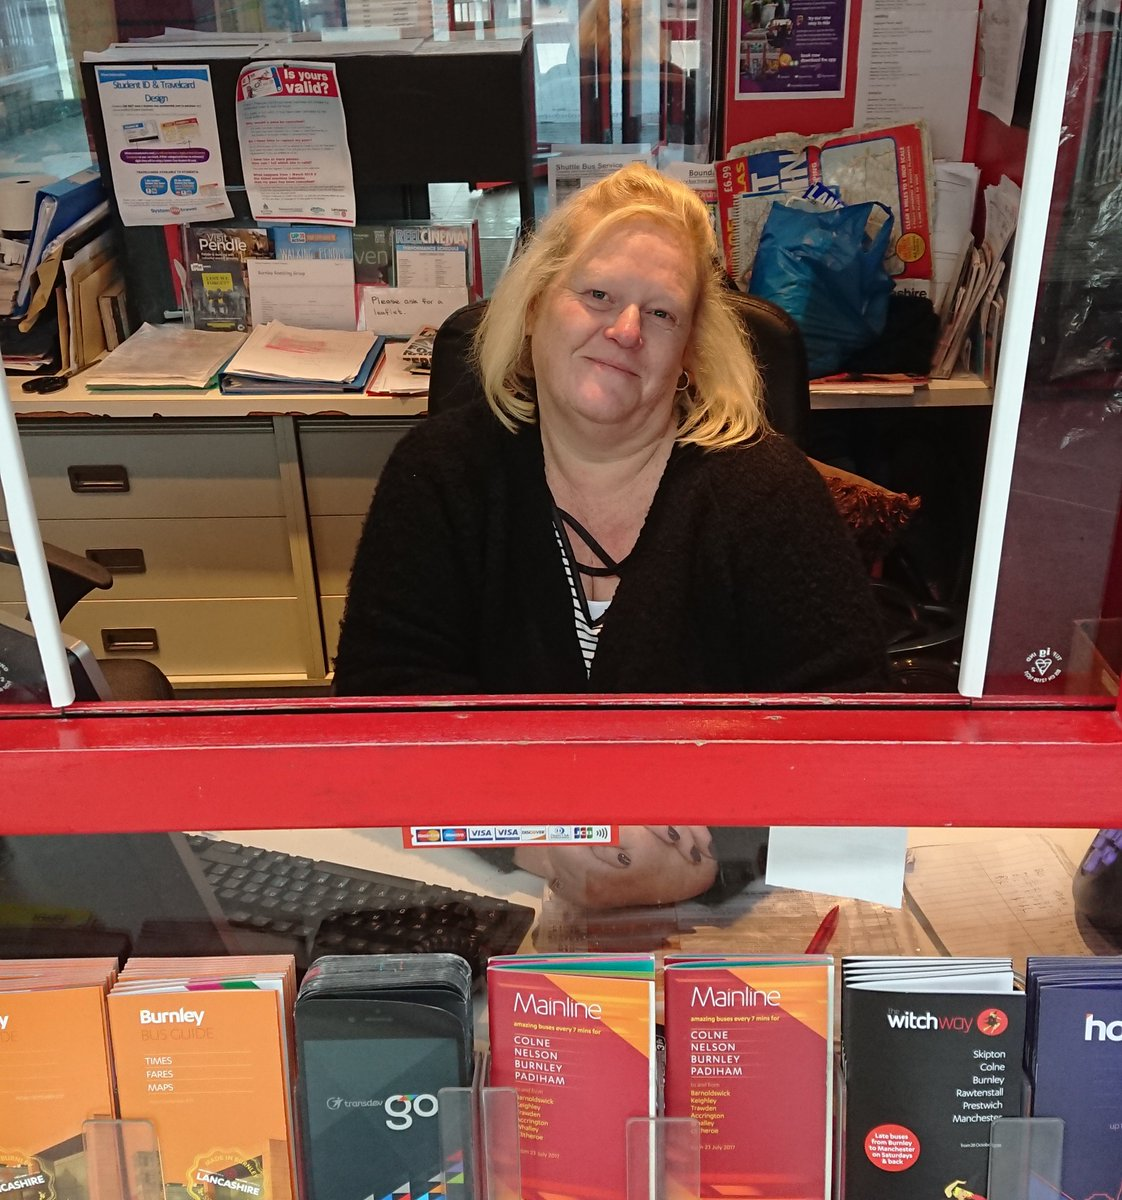 🌞 Good morning! It's International Women's Day, and today we're taking time to celebrate the achievements of the women who work for us. Alison has been the friendly face of buses in Burnley for over 21 years, and her knowledge of our routes is second to none! #IWD2019 @womensday